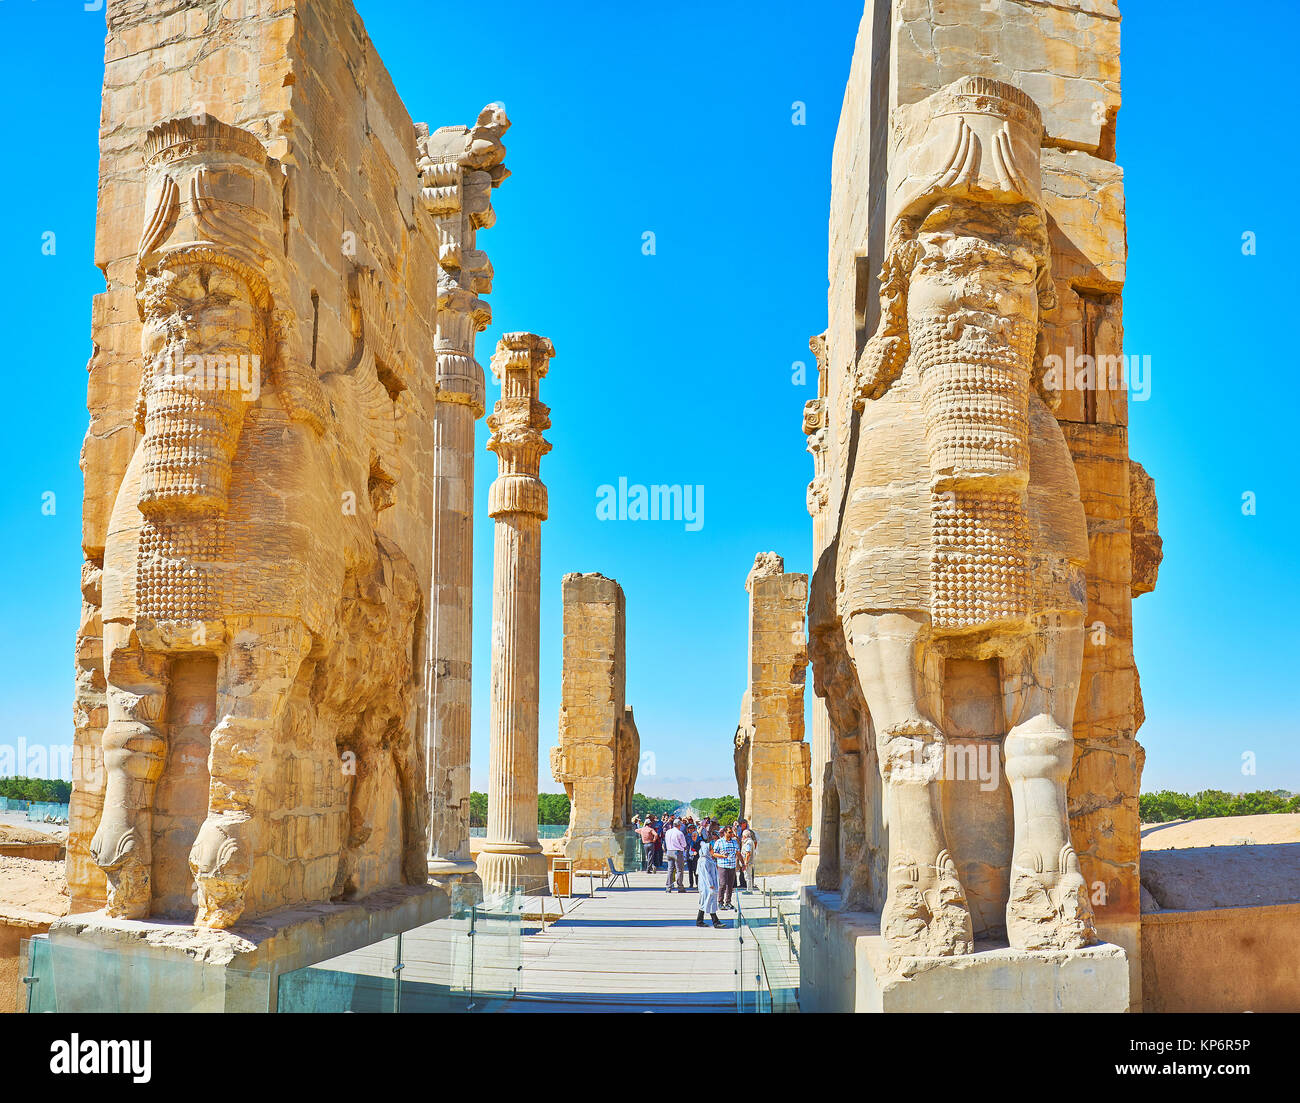 PERSEPOLIS, IRAN - OCTOBER 13, 2017: The great entrance to All Nations Gate (Xerxes Gate) in Persepolis archaeological - Stock Image